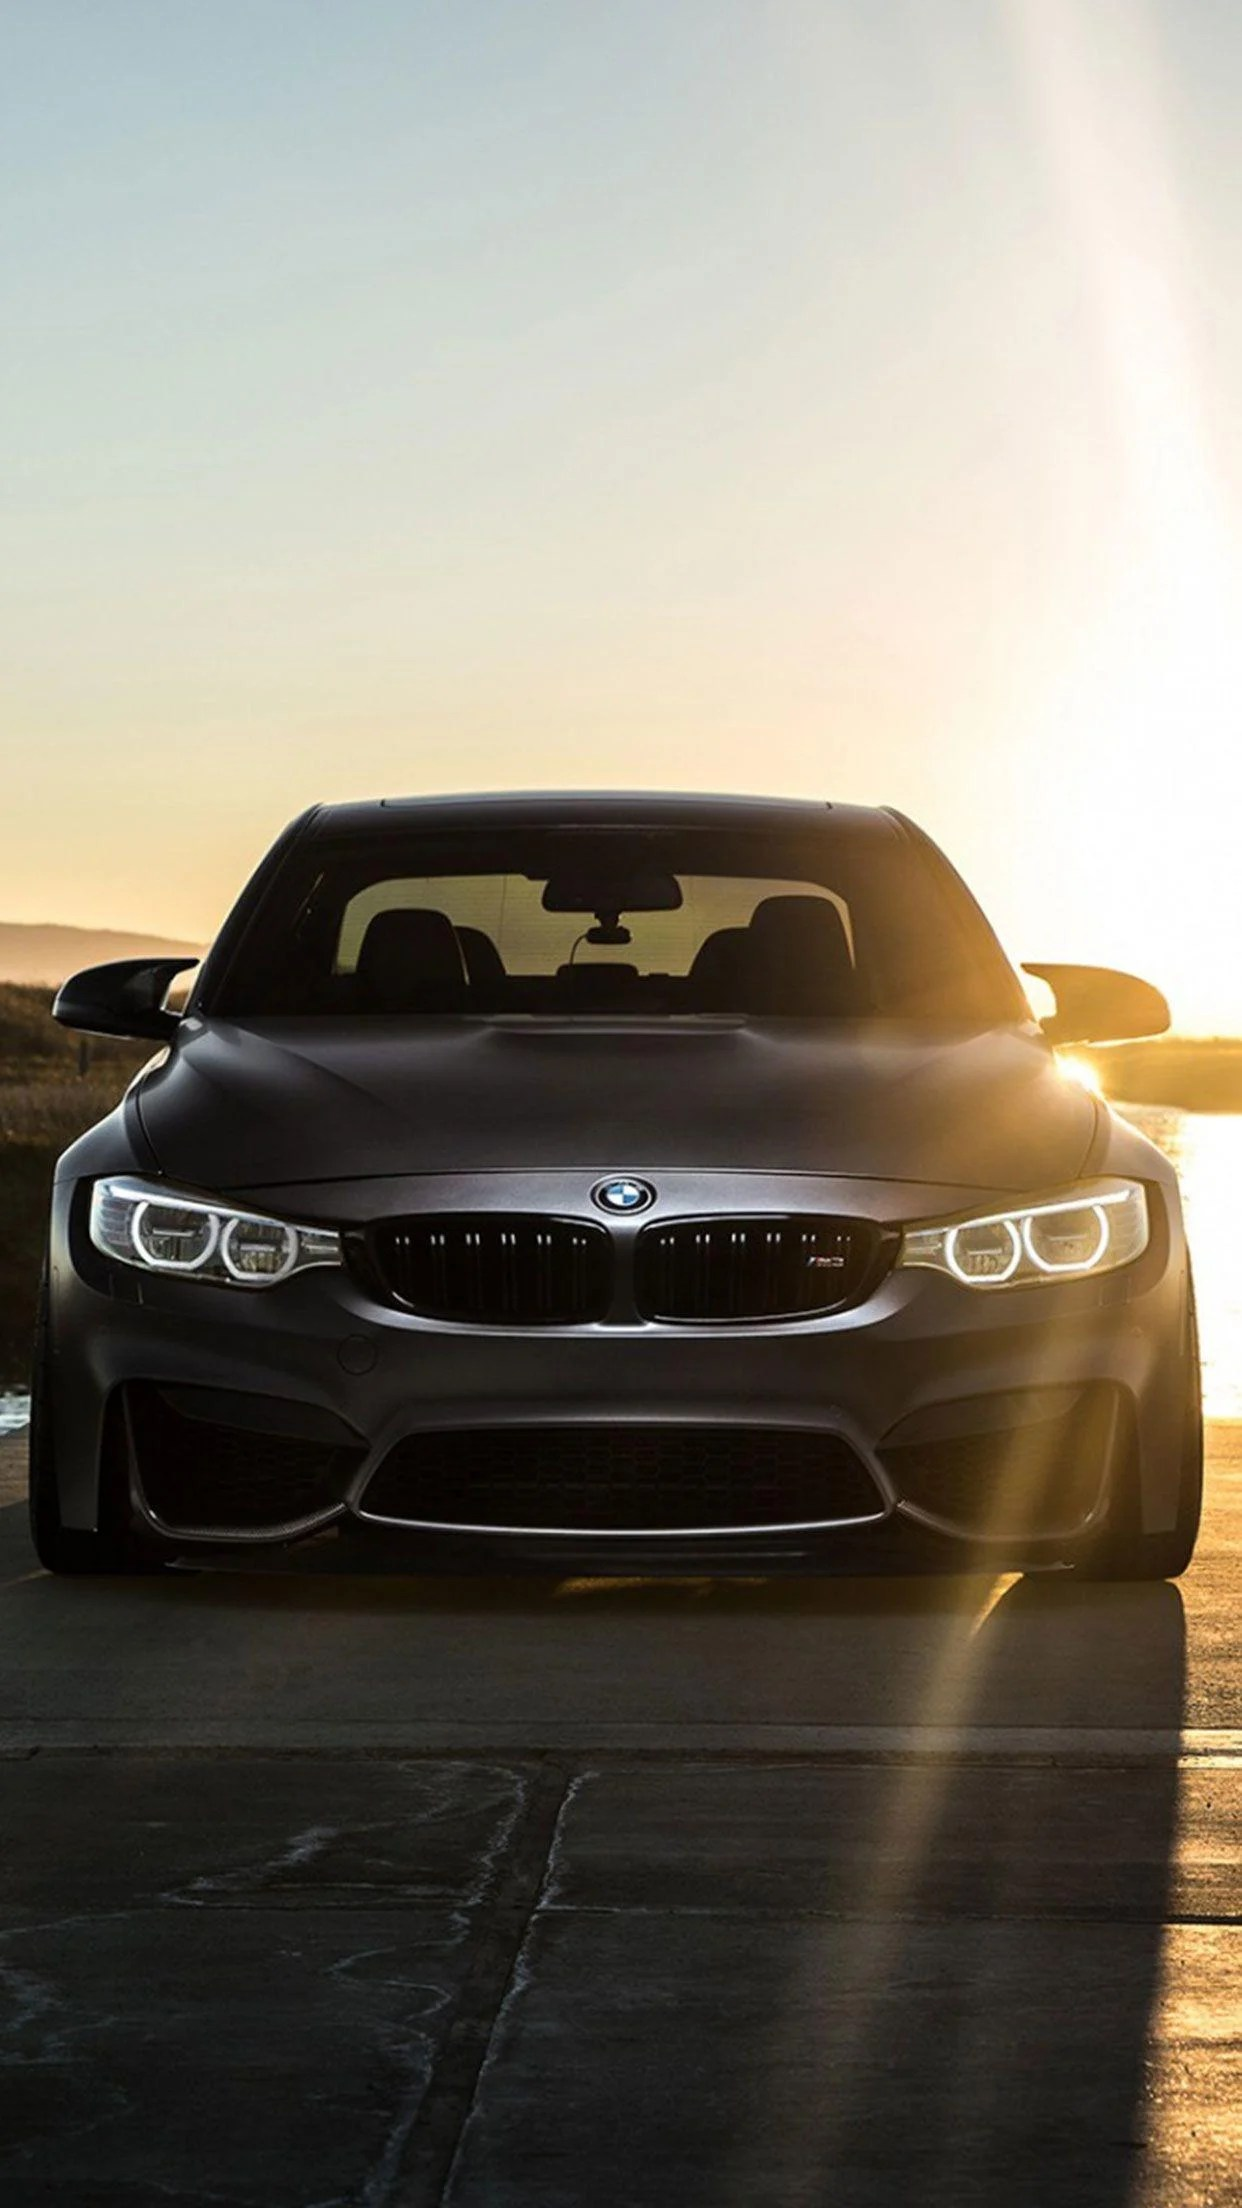 Bmw Wallpaper 4k : wallpaper, IPhone, Wallpapers, Wallpaper